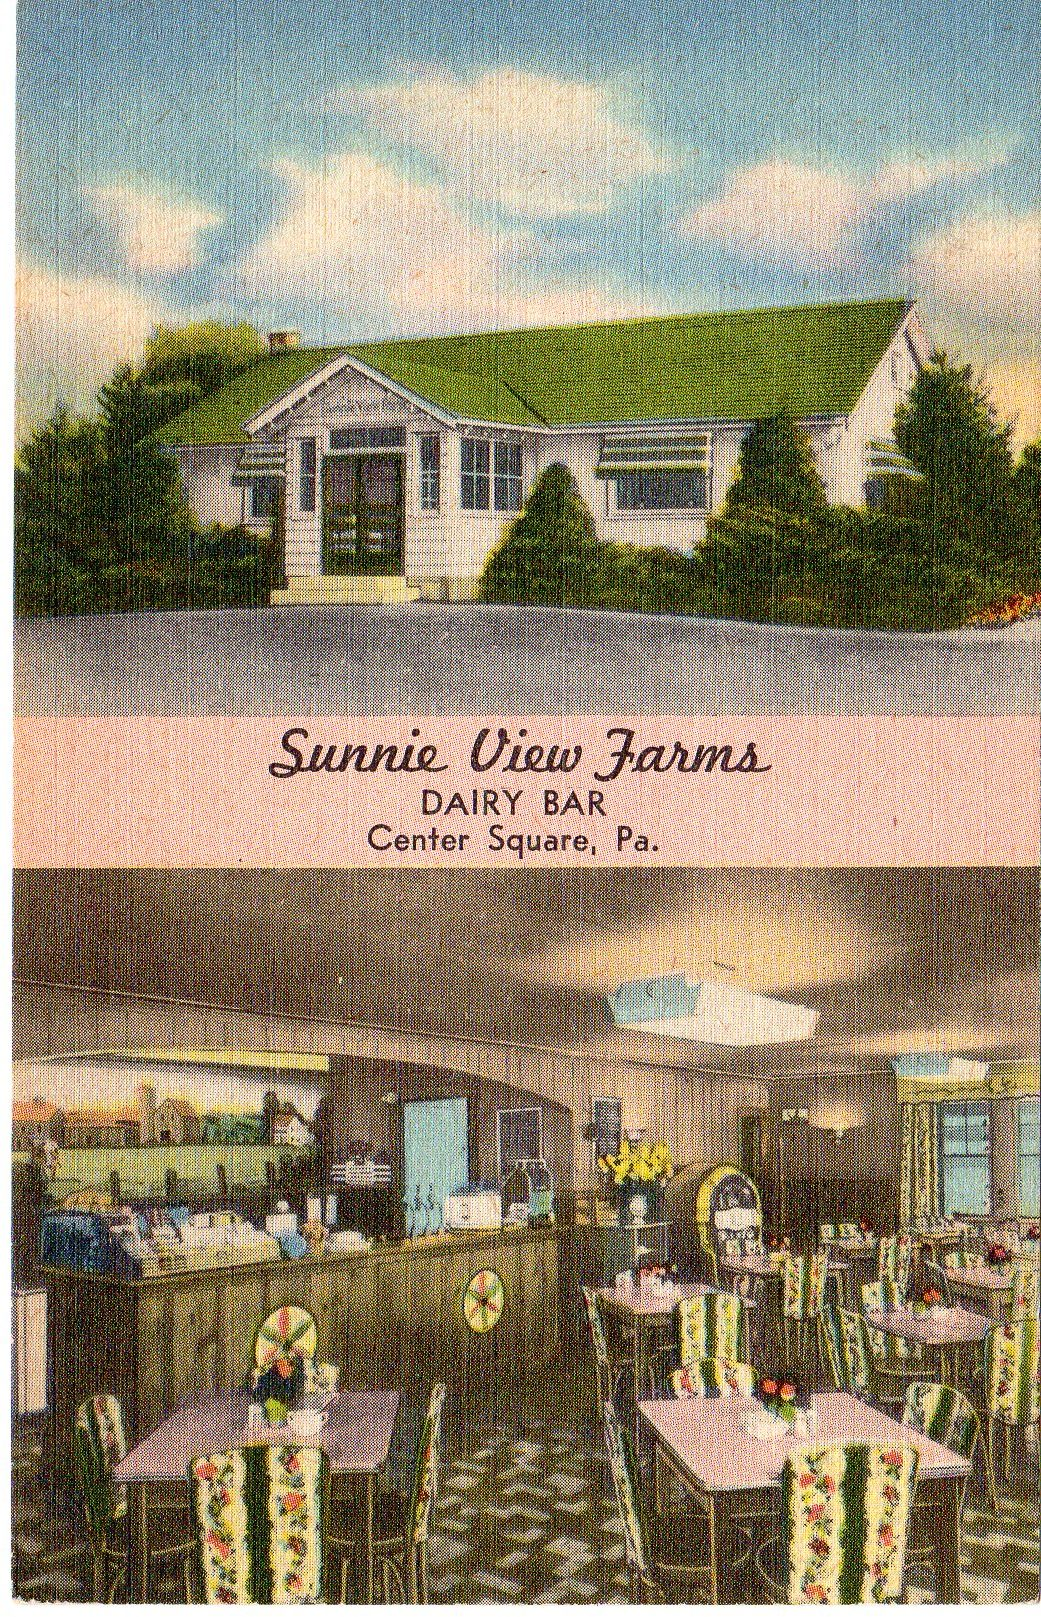 Post Card Collection (E Simon)_2682_77_Sunnie View Farms, Dairy Bar, Center Square, Pa